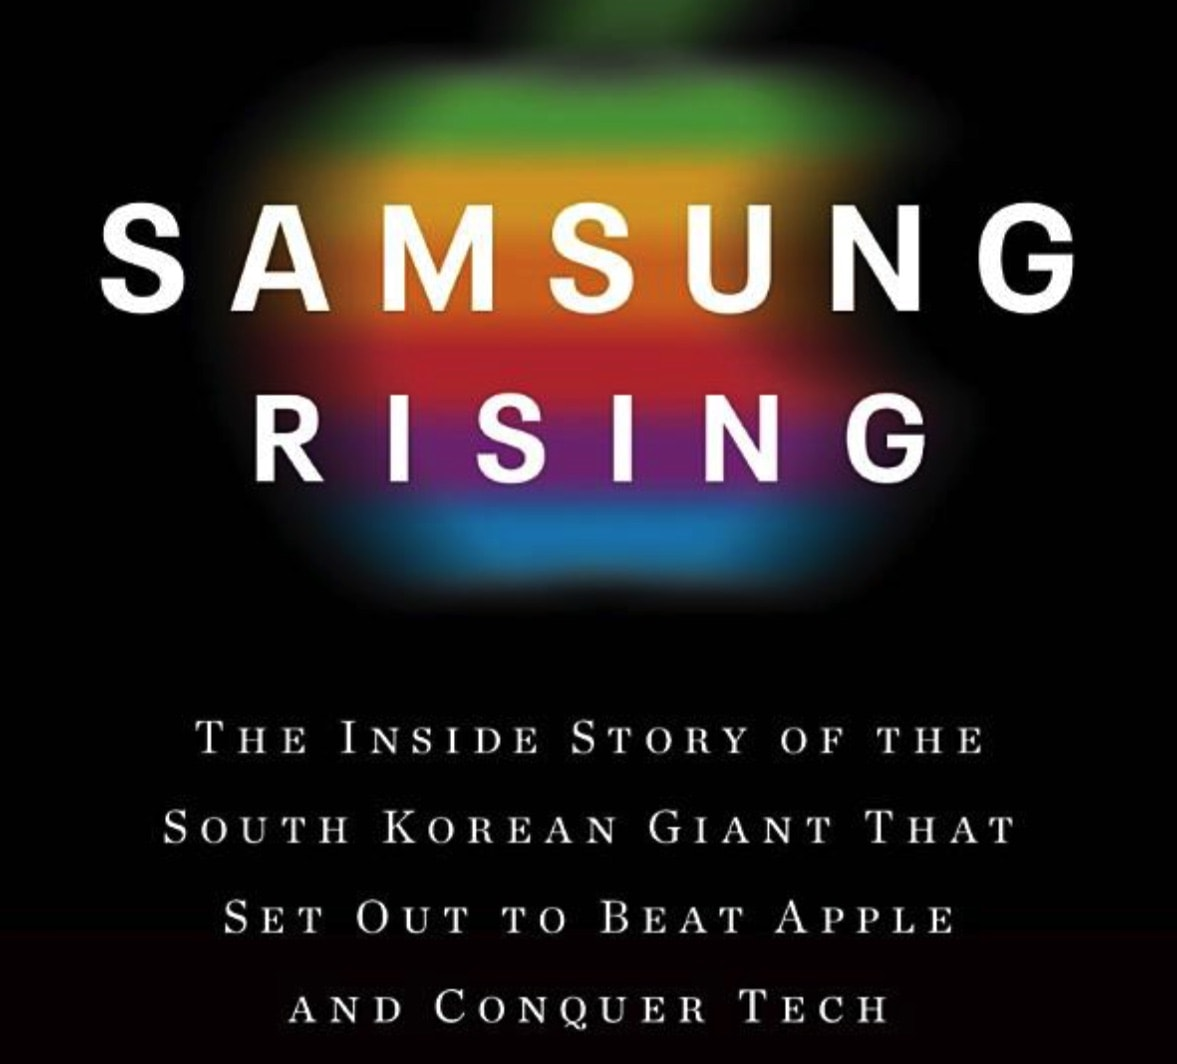 Samsung Rising tells how Apple pushed Samsung to be No. 1.